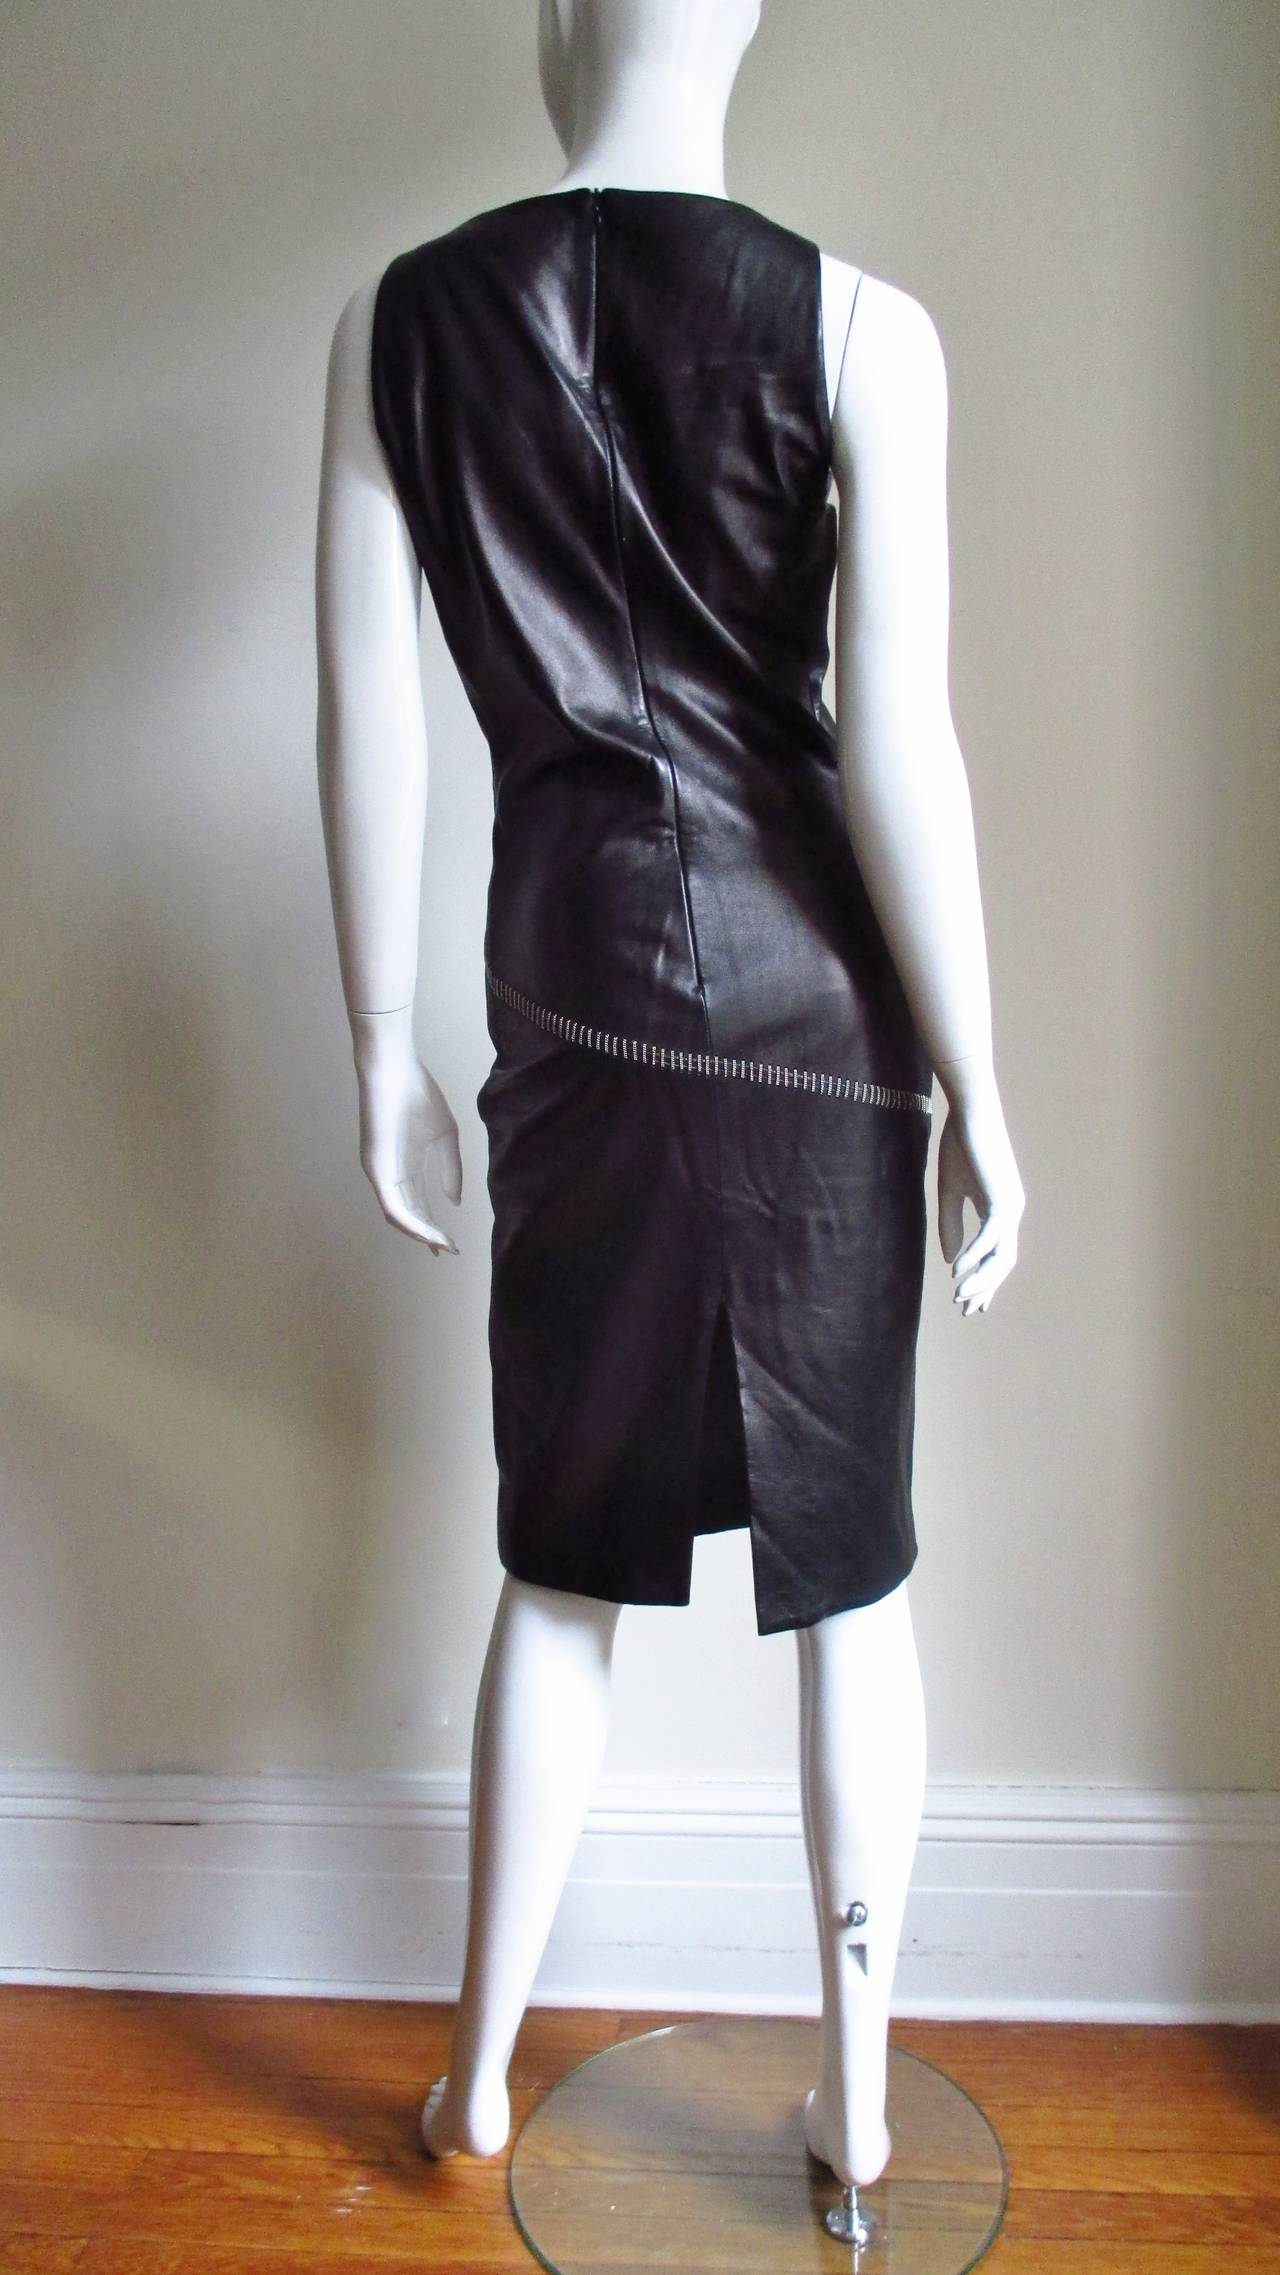 Gianni Versace Leather Dress With Chains 9